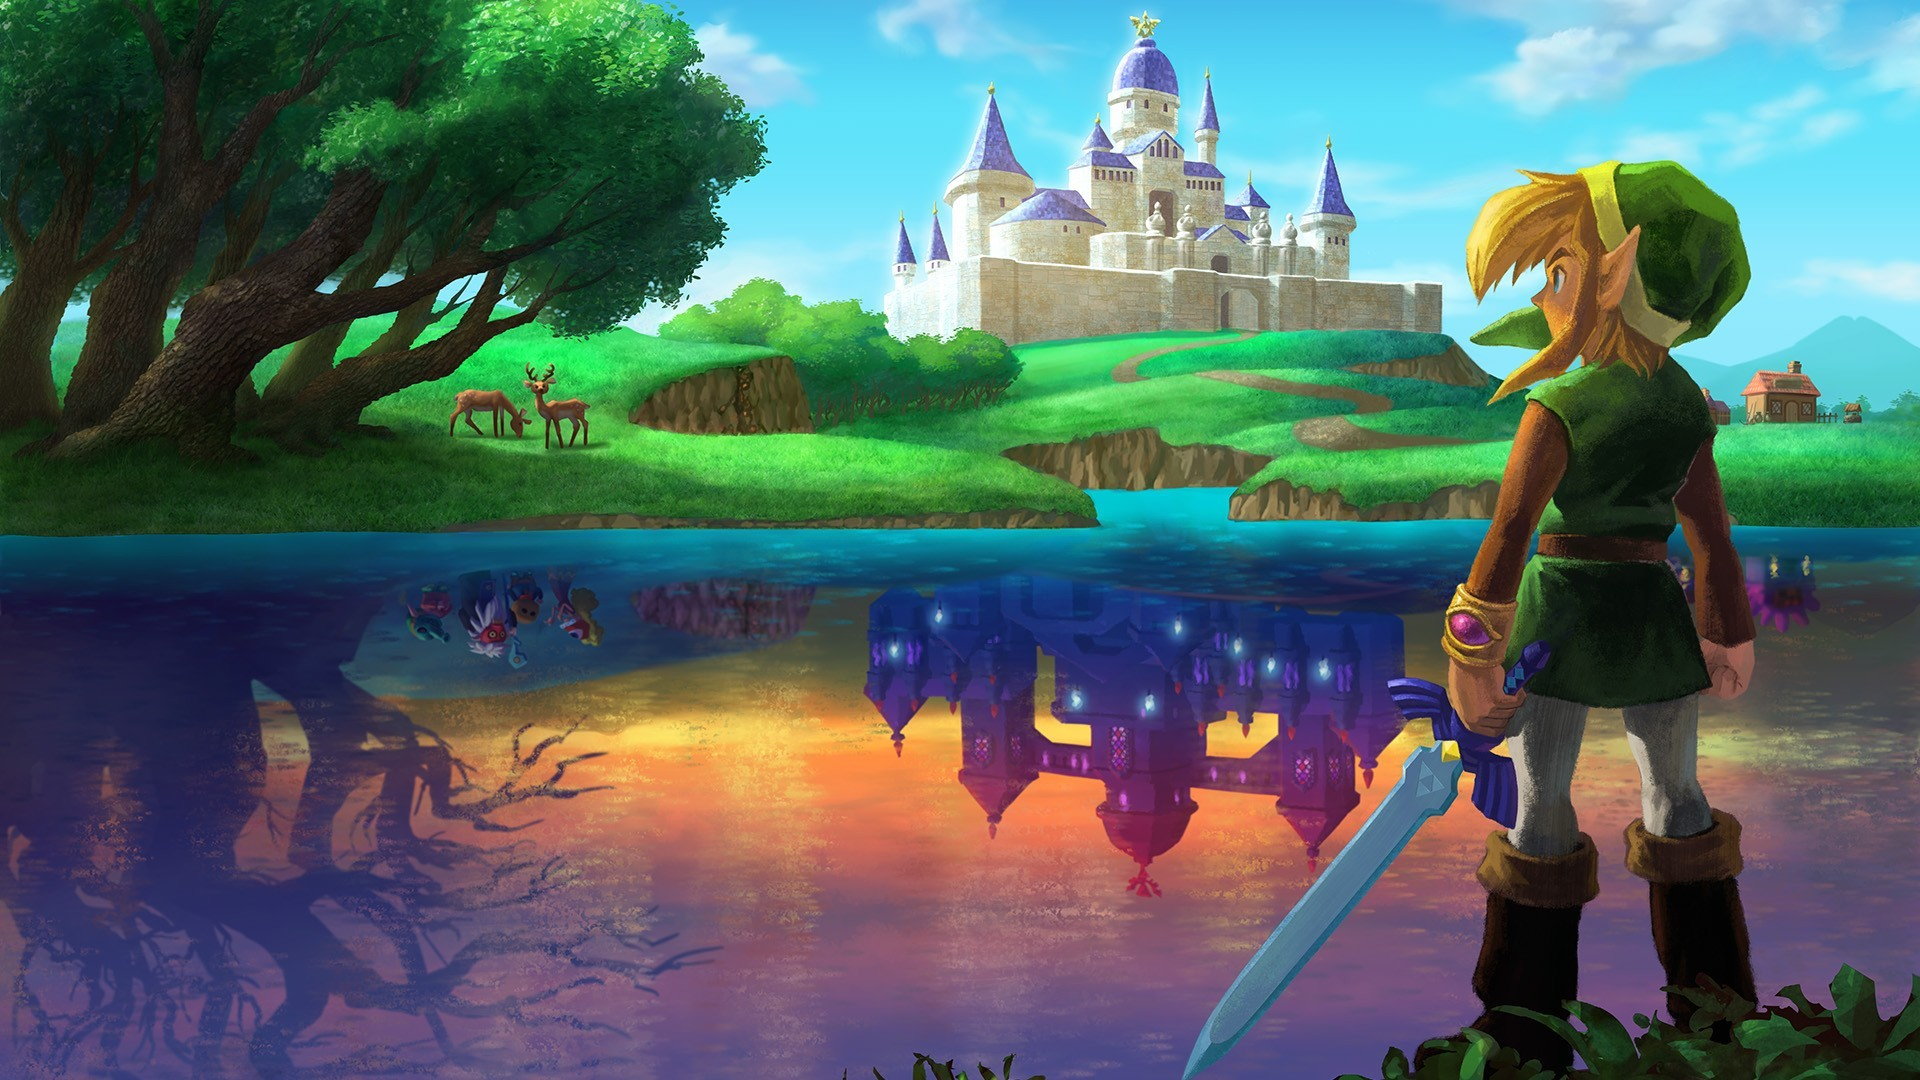 1920x1080 #video games, #Link, #The Legend of Zelda, #Master Sword wallpaper